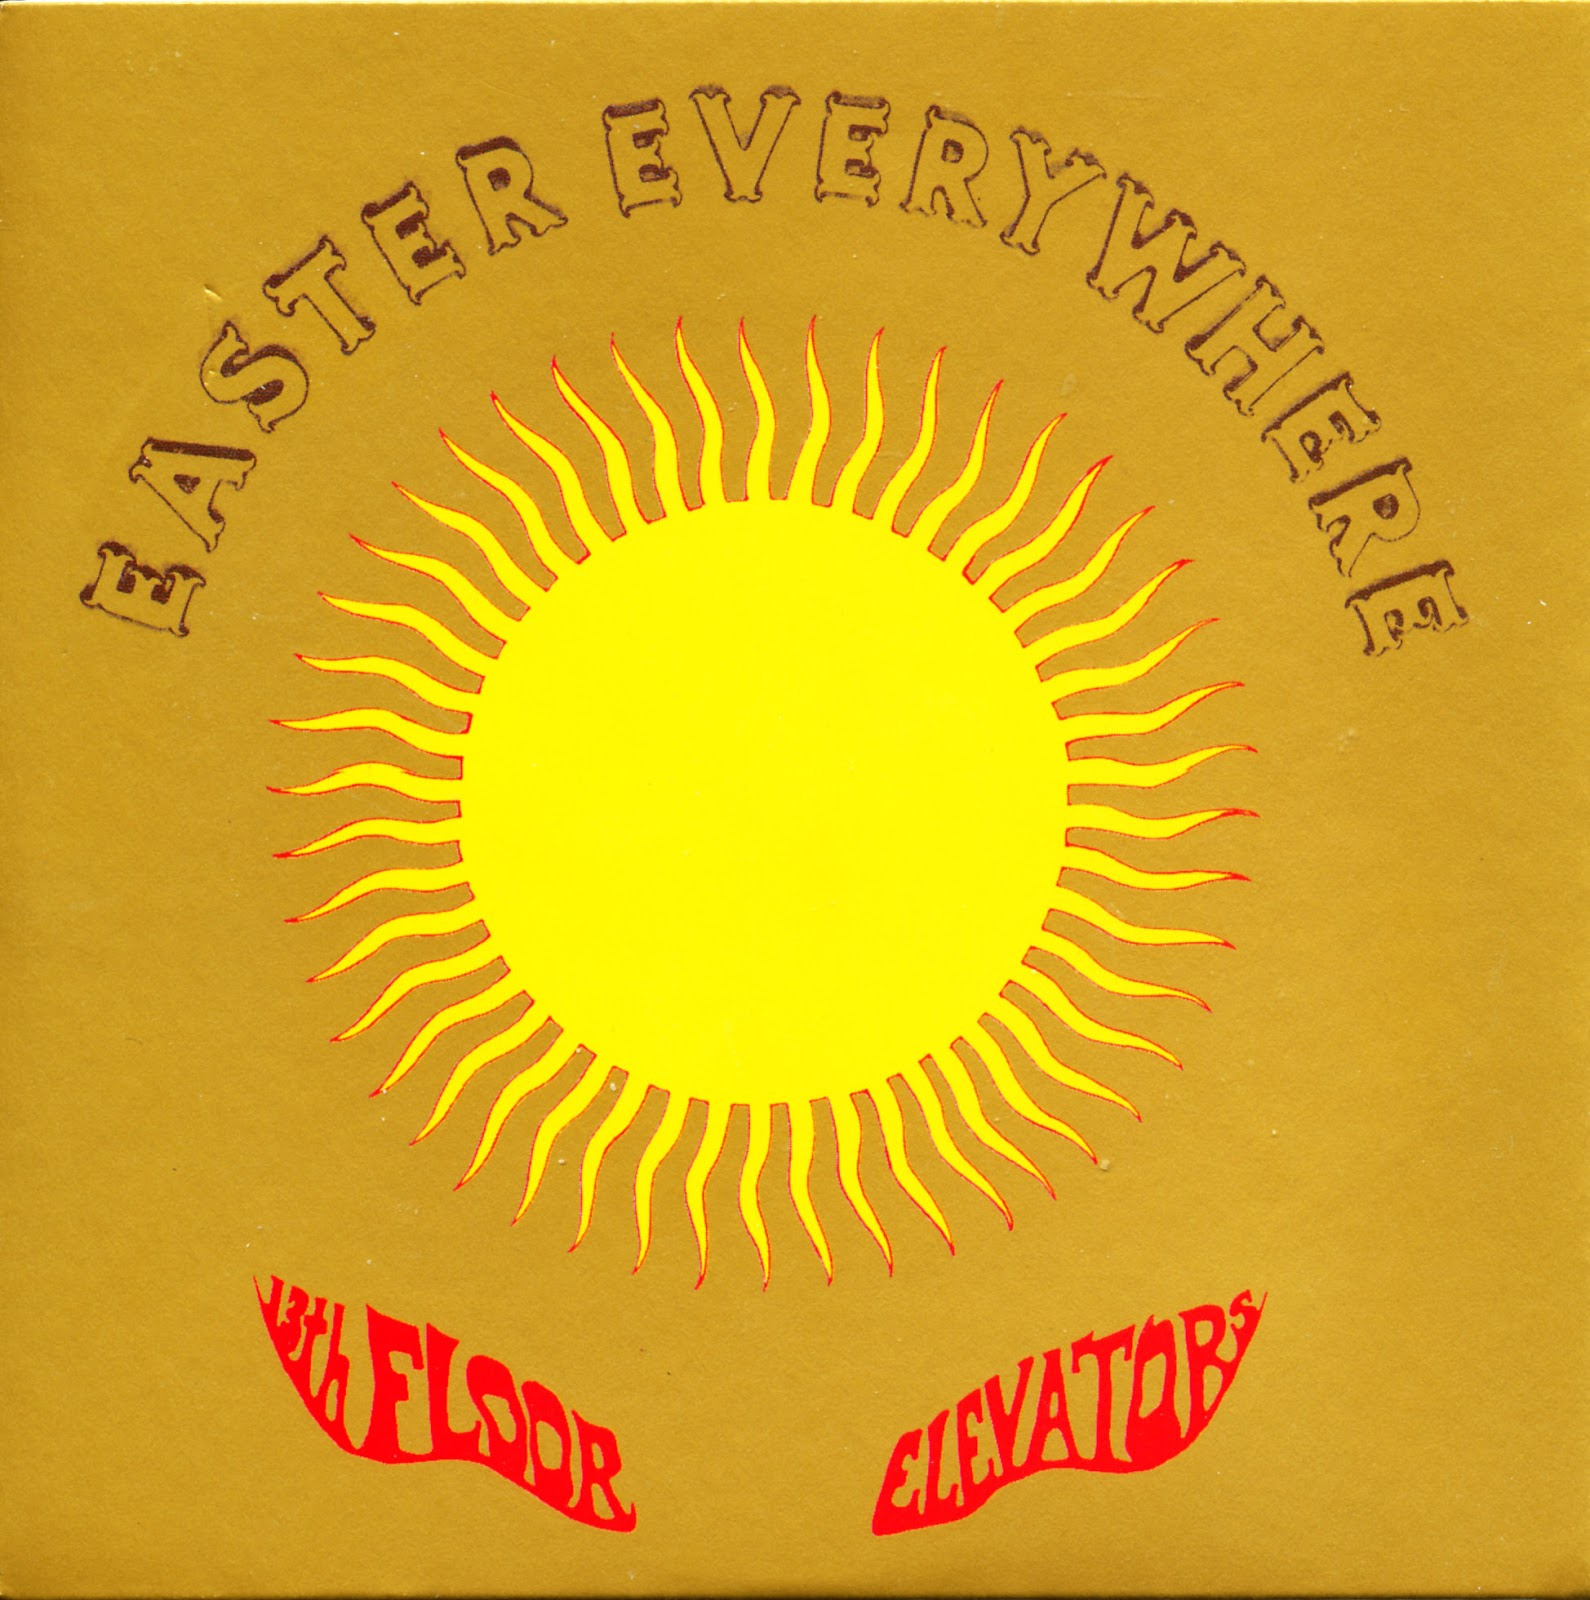 Cun cun revival the 13th floor elevators 1967 for 13th floor elevators easter everywhere